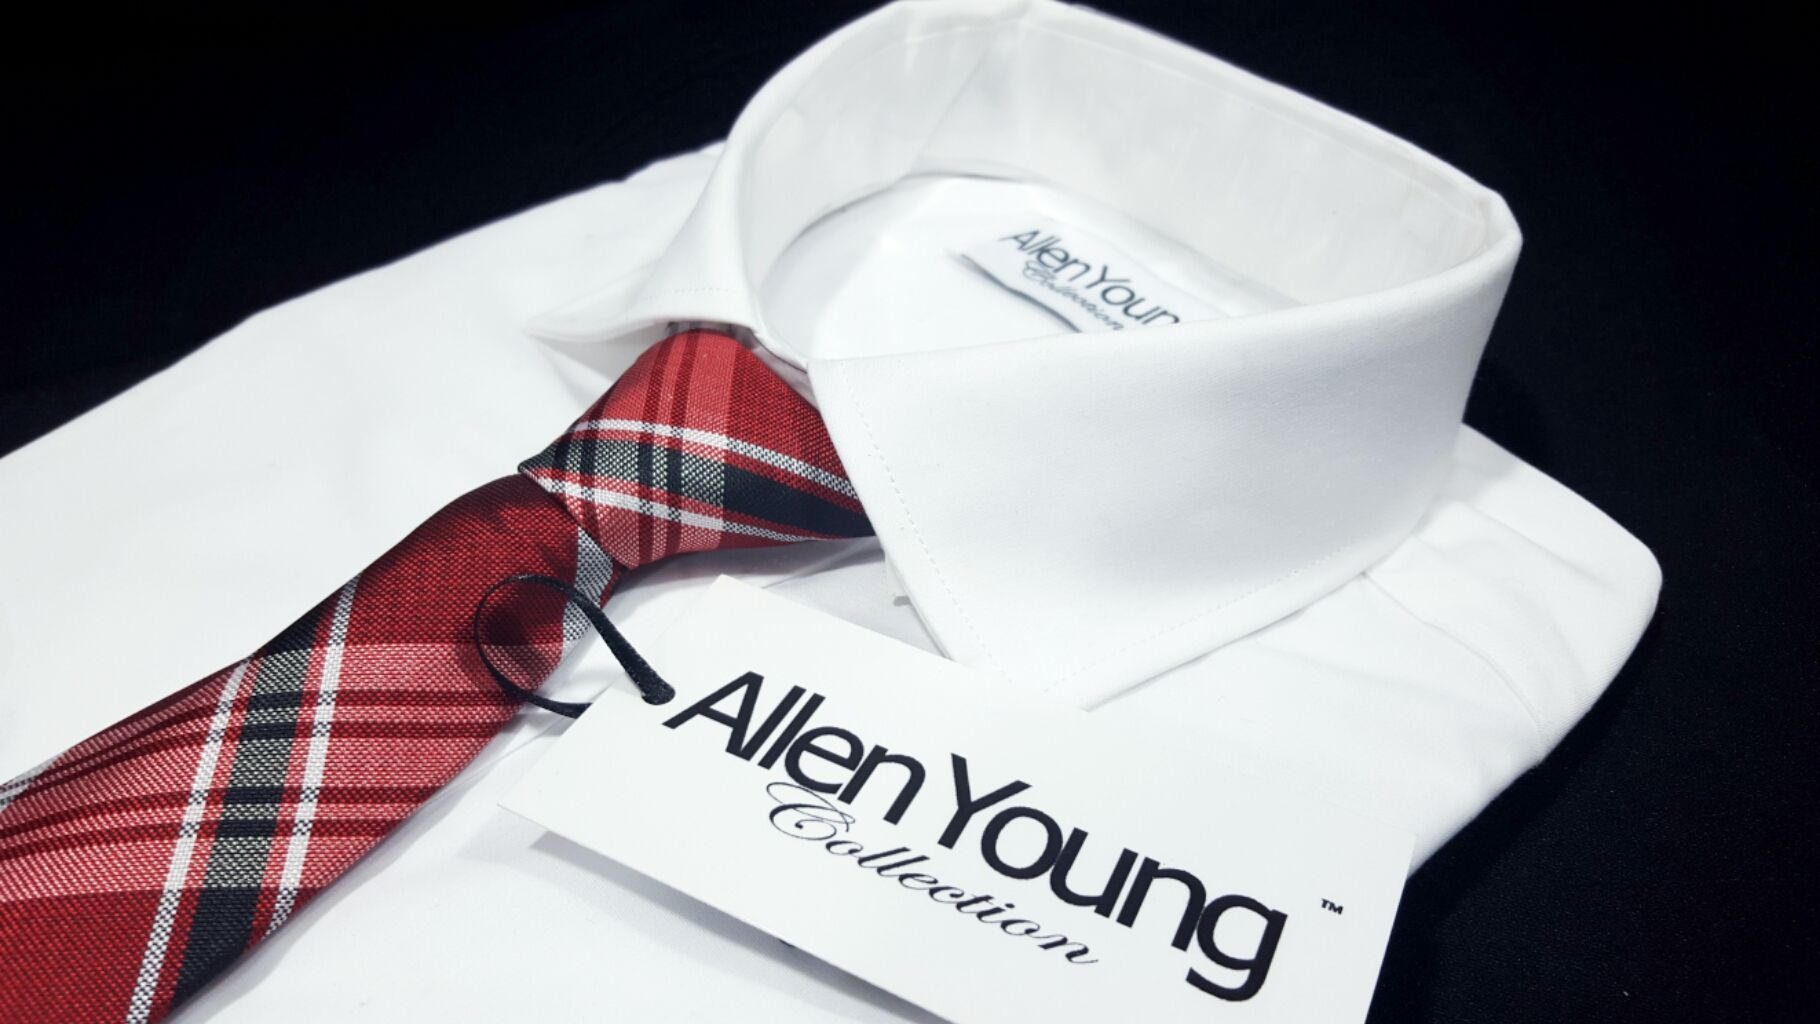 AllenYoungColl.jpg